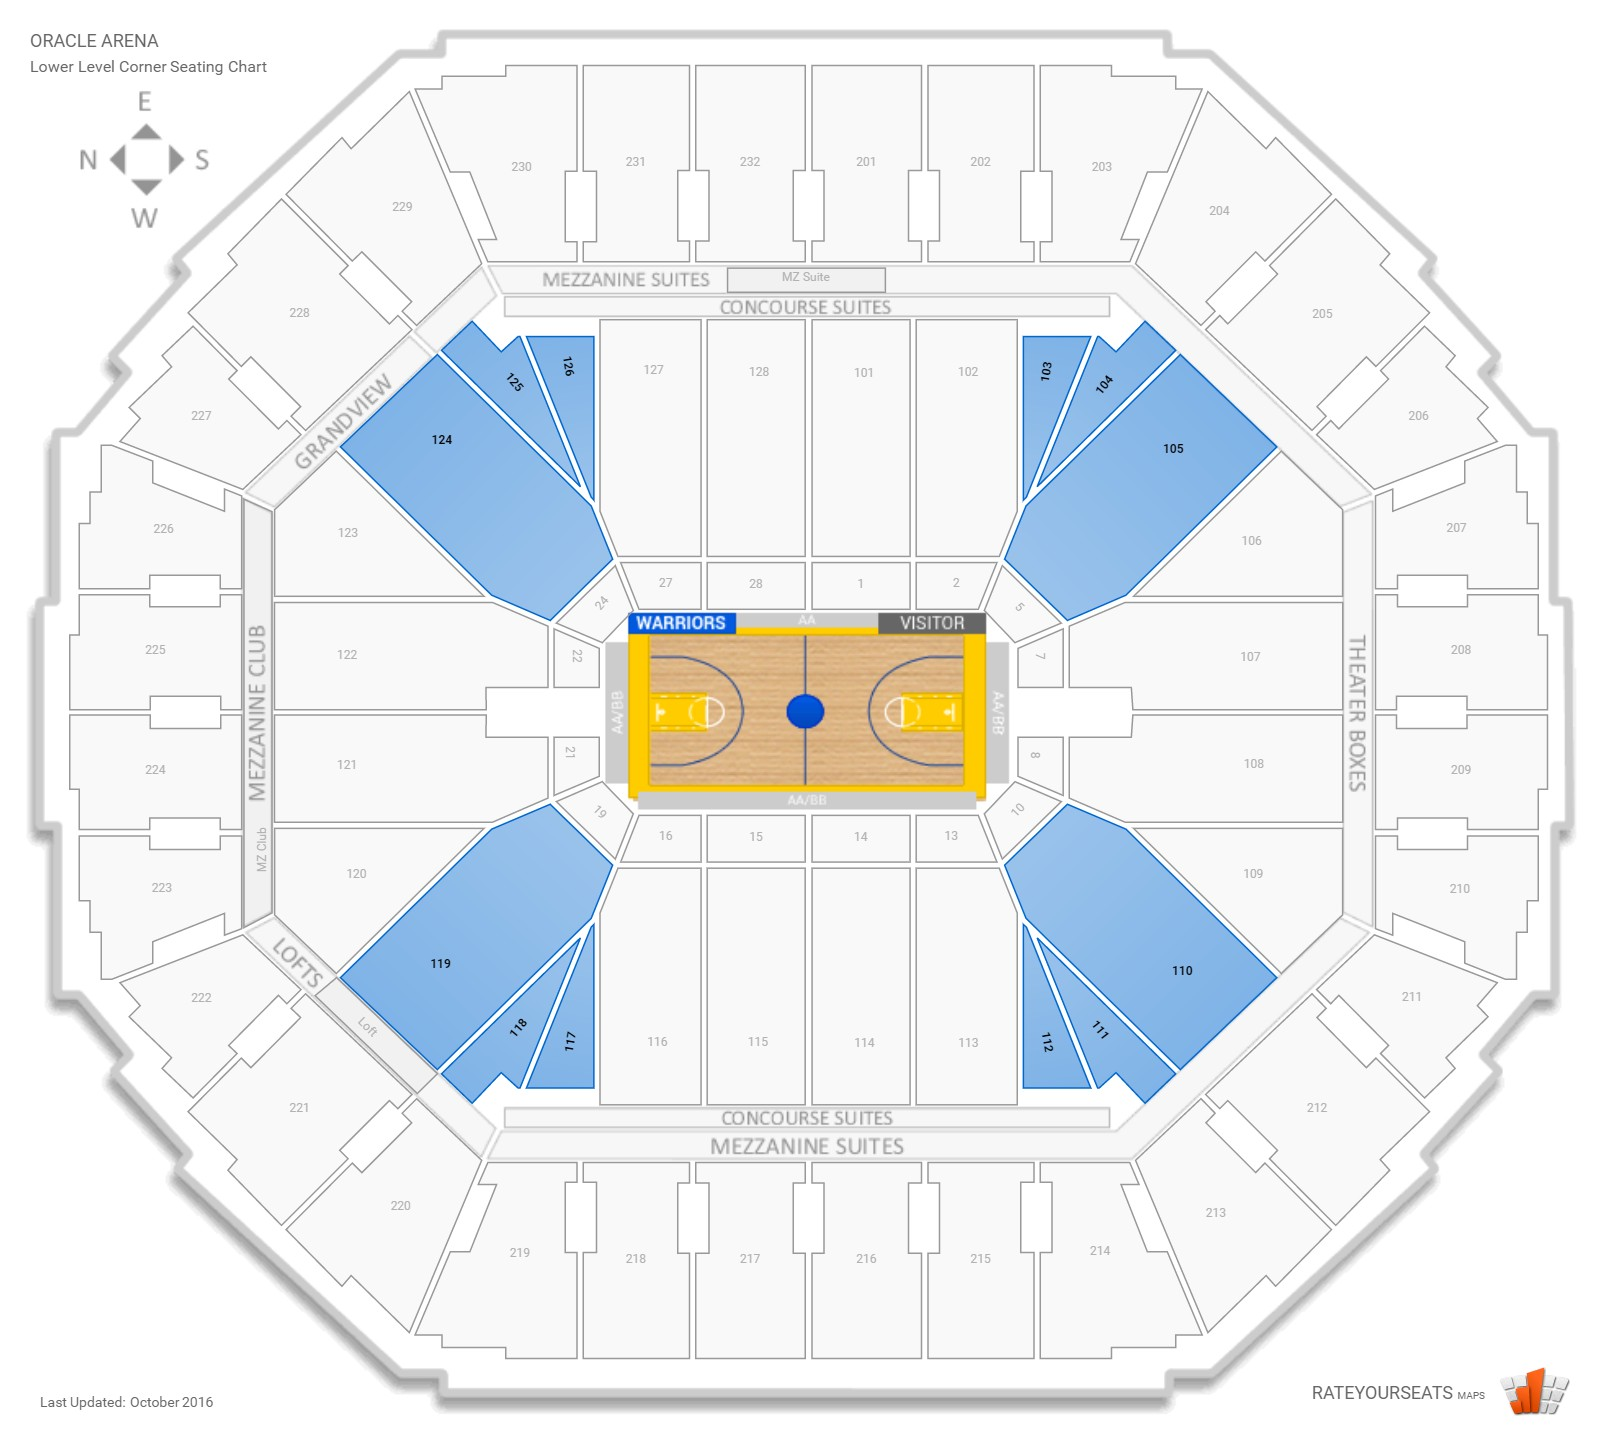 Oracle Arena Lower Level Corner seating chart